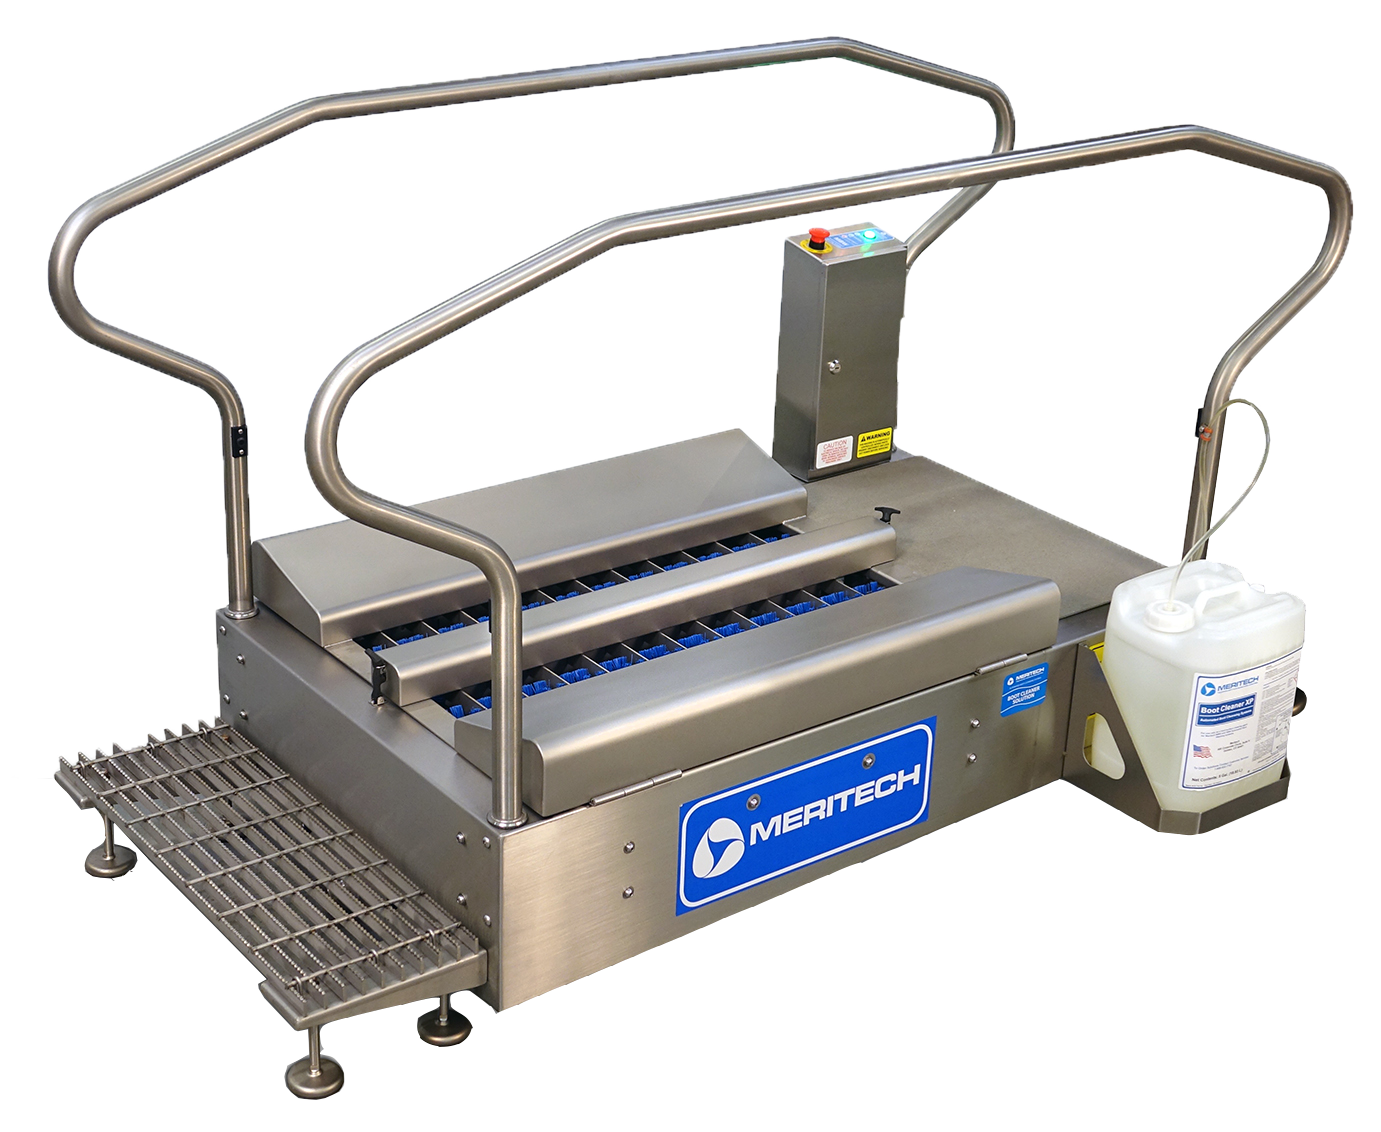 Meritech XBW SO Automatic Boot Scrubbing Station